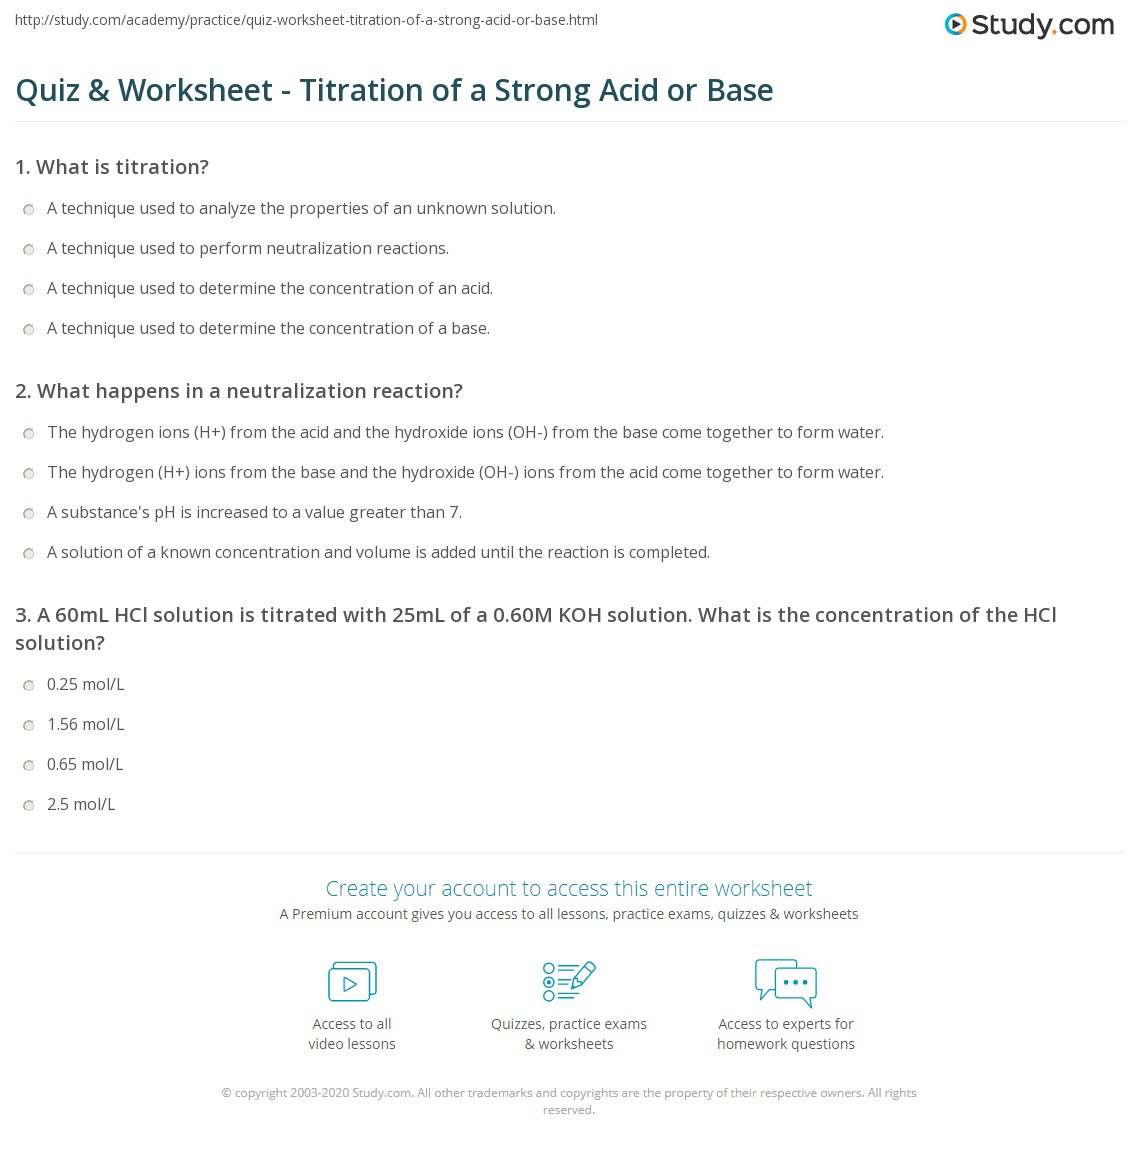 Weak Acids And Bases Worksheet Answers: Quiz & Worksheet   Titration of a Strong Acid or Base   Study com,